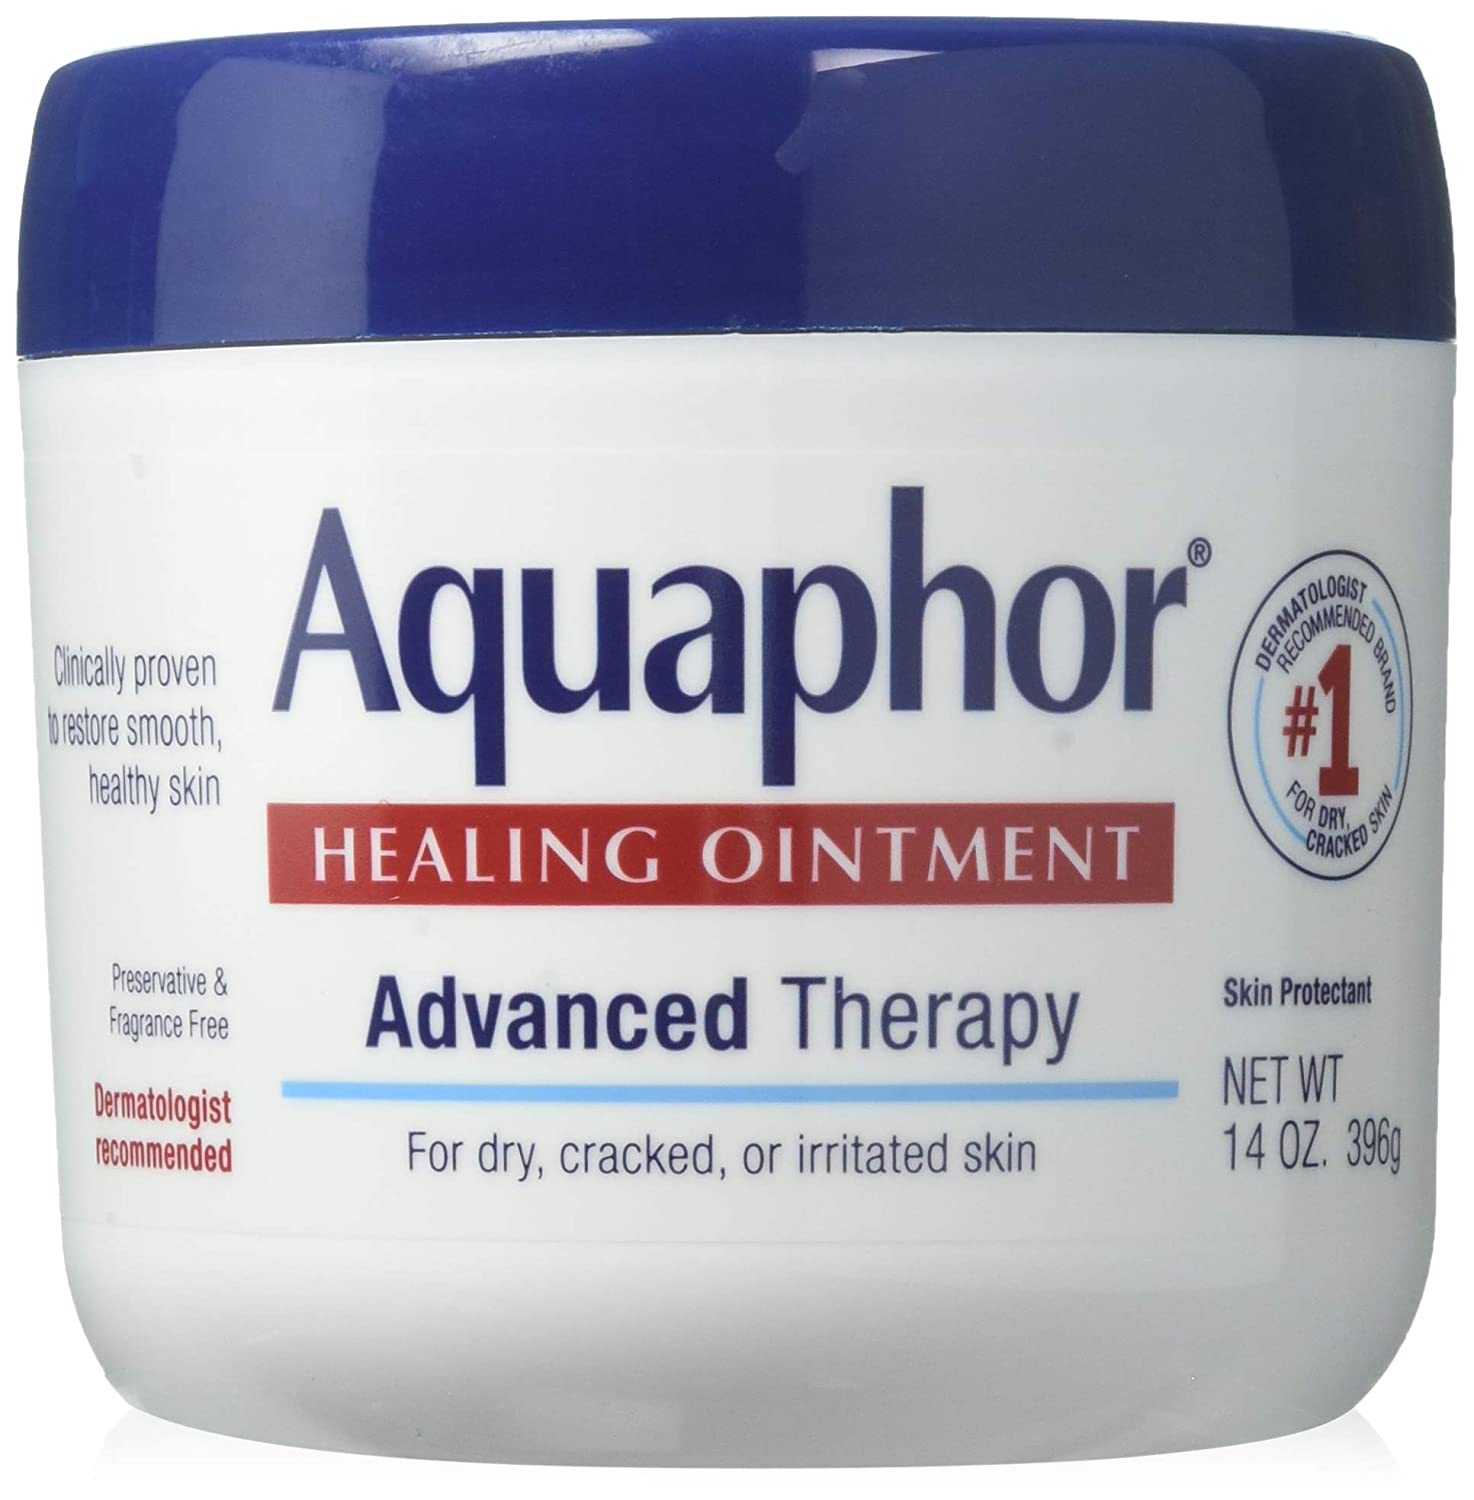 PACK OF 3 - Aquaphor Advanced Therapy Healing Ointment Skin Protectant 14 oz. Jar